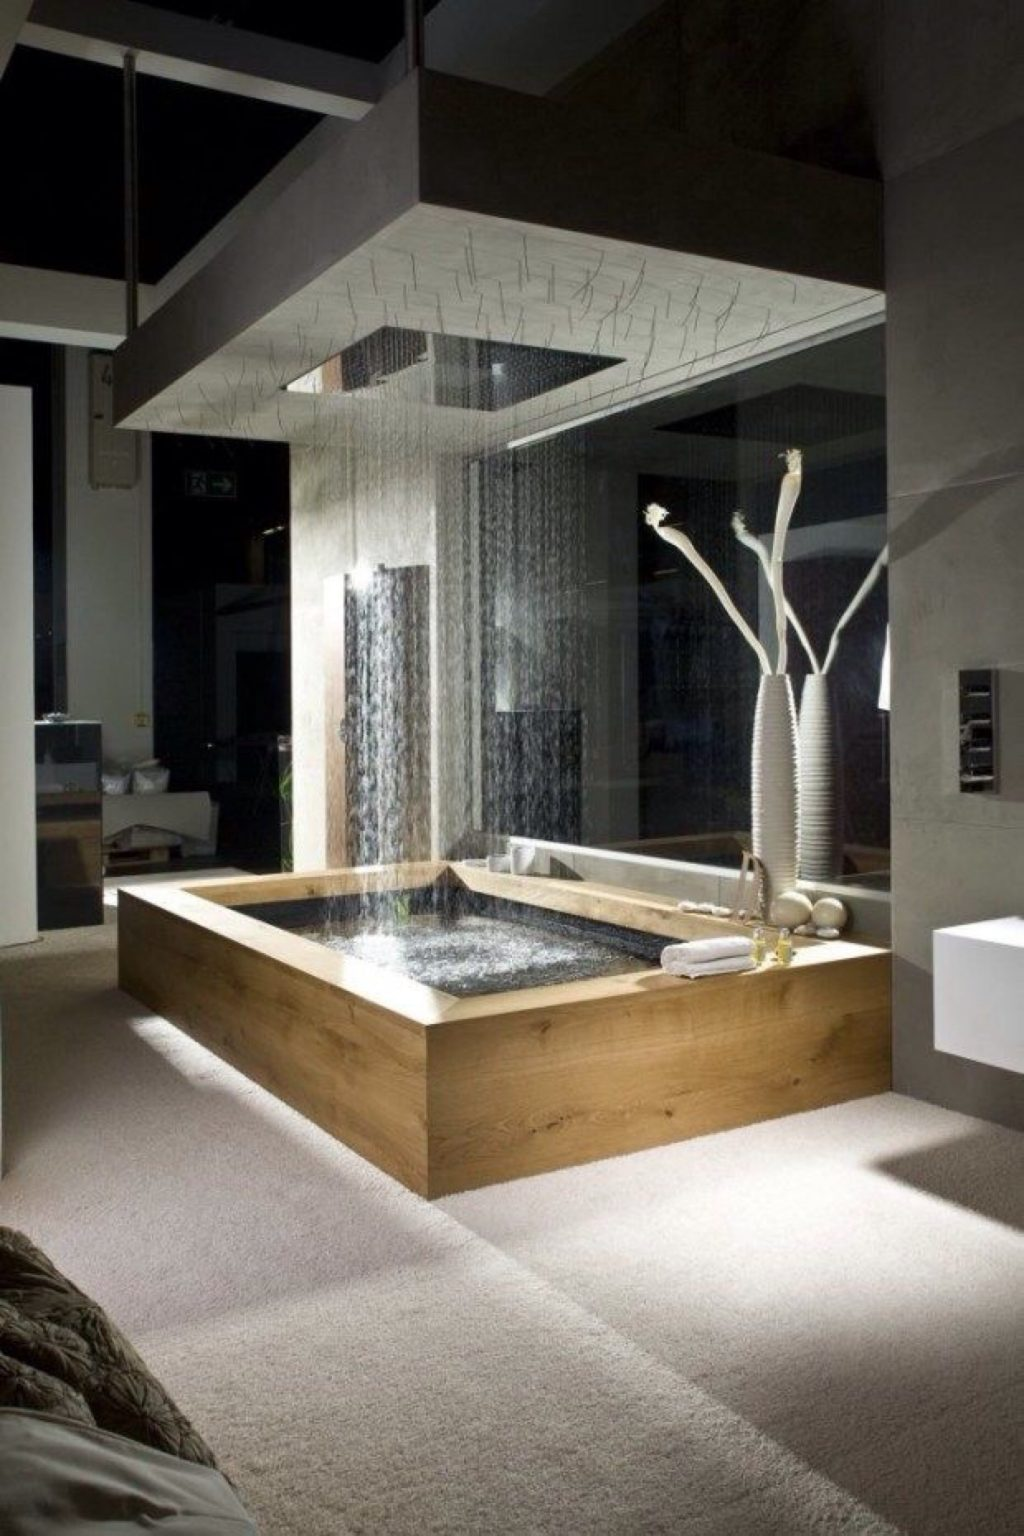 5 Different Accessories for an Elegant Bathroom Design 5 different accessories for an elegant bathroom design 5 Different Accessories for an Elegant Bathroom Design 5 Different Accessories for an Elegant Bathroom Design 05 1